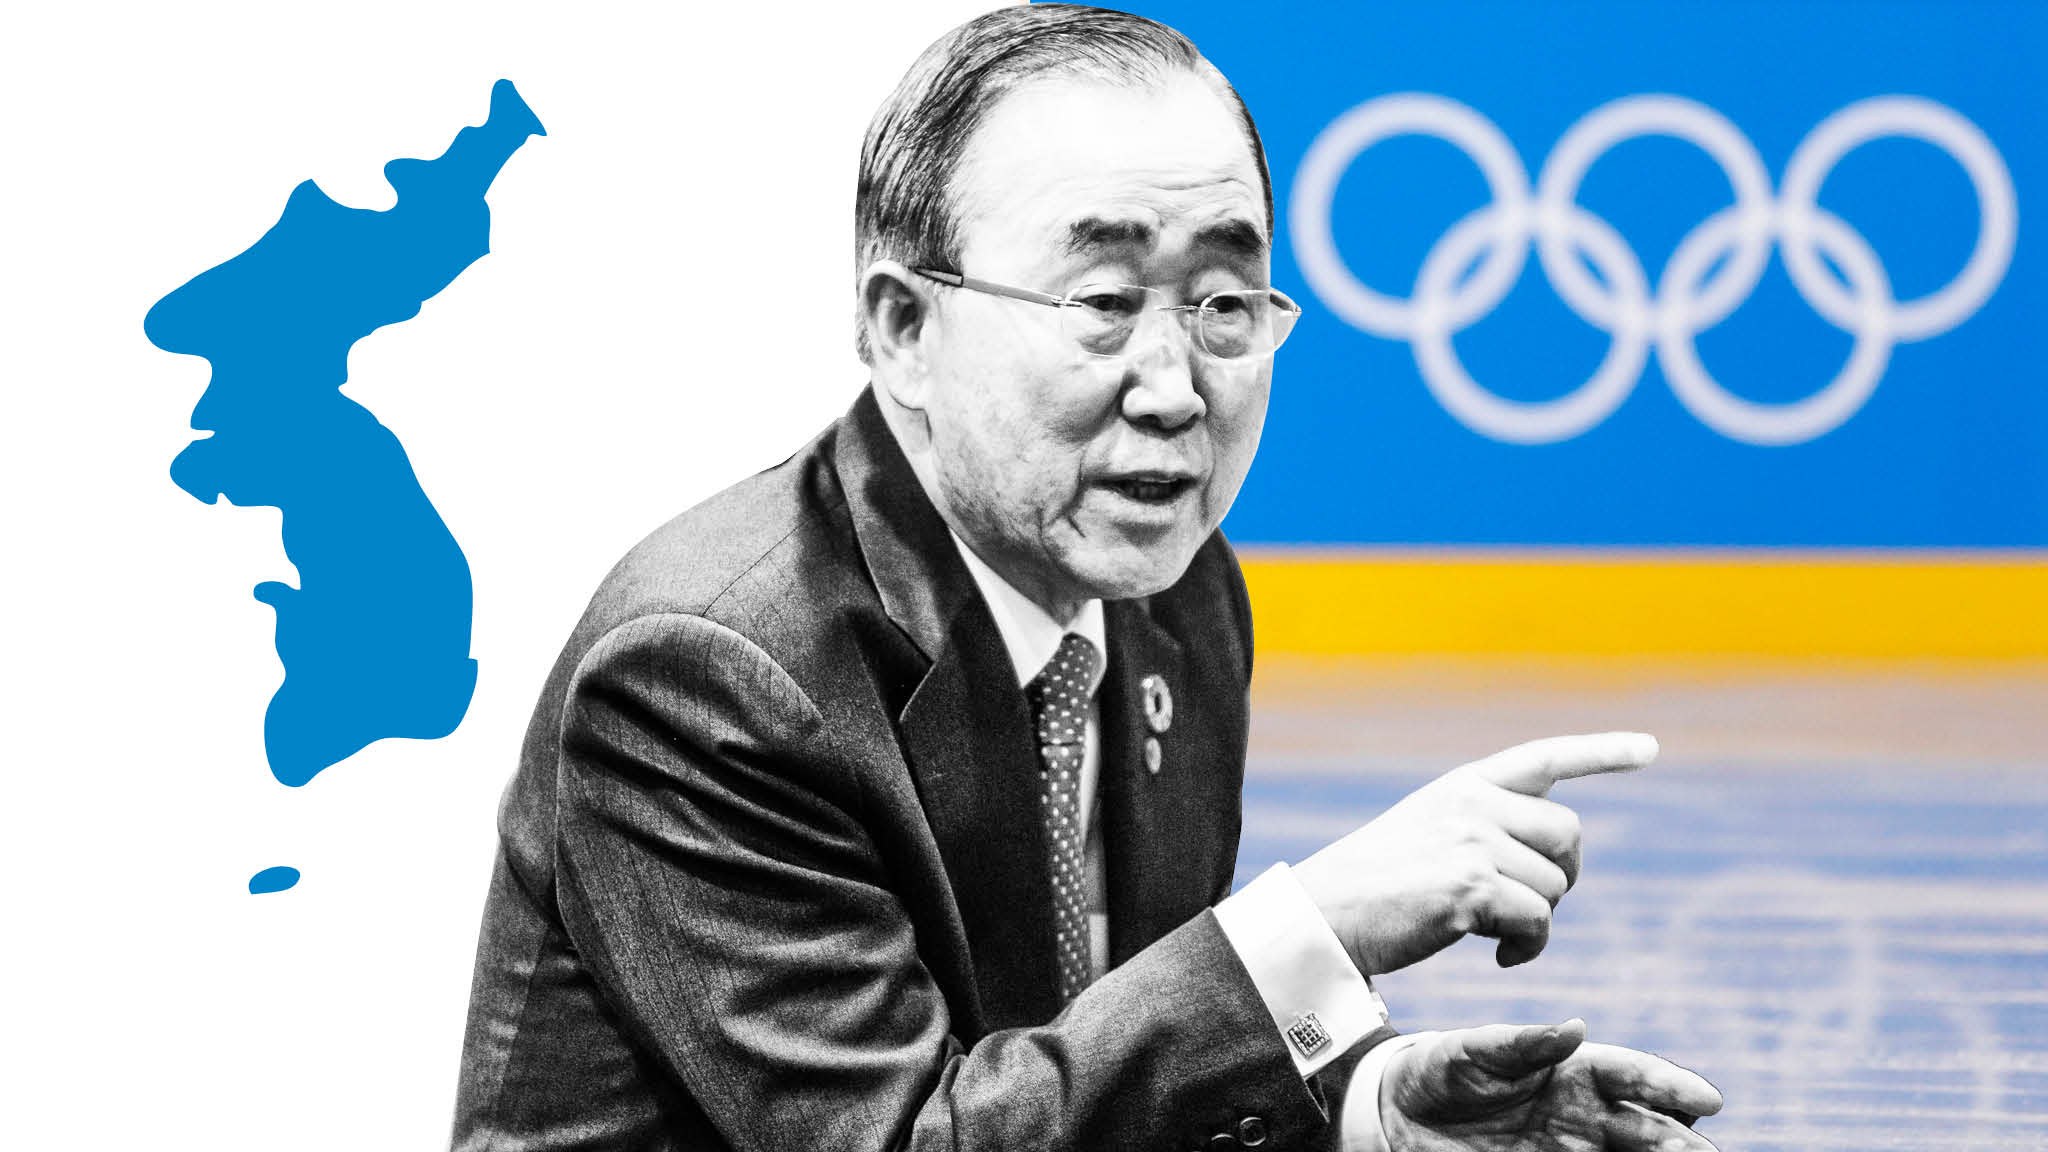 Olympics: North and South Korea must seize this political moment